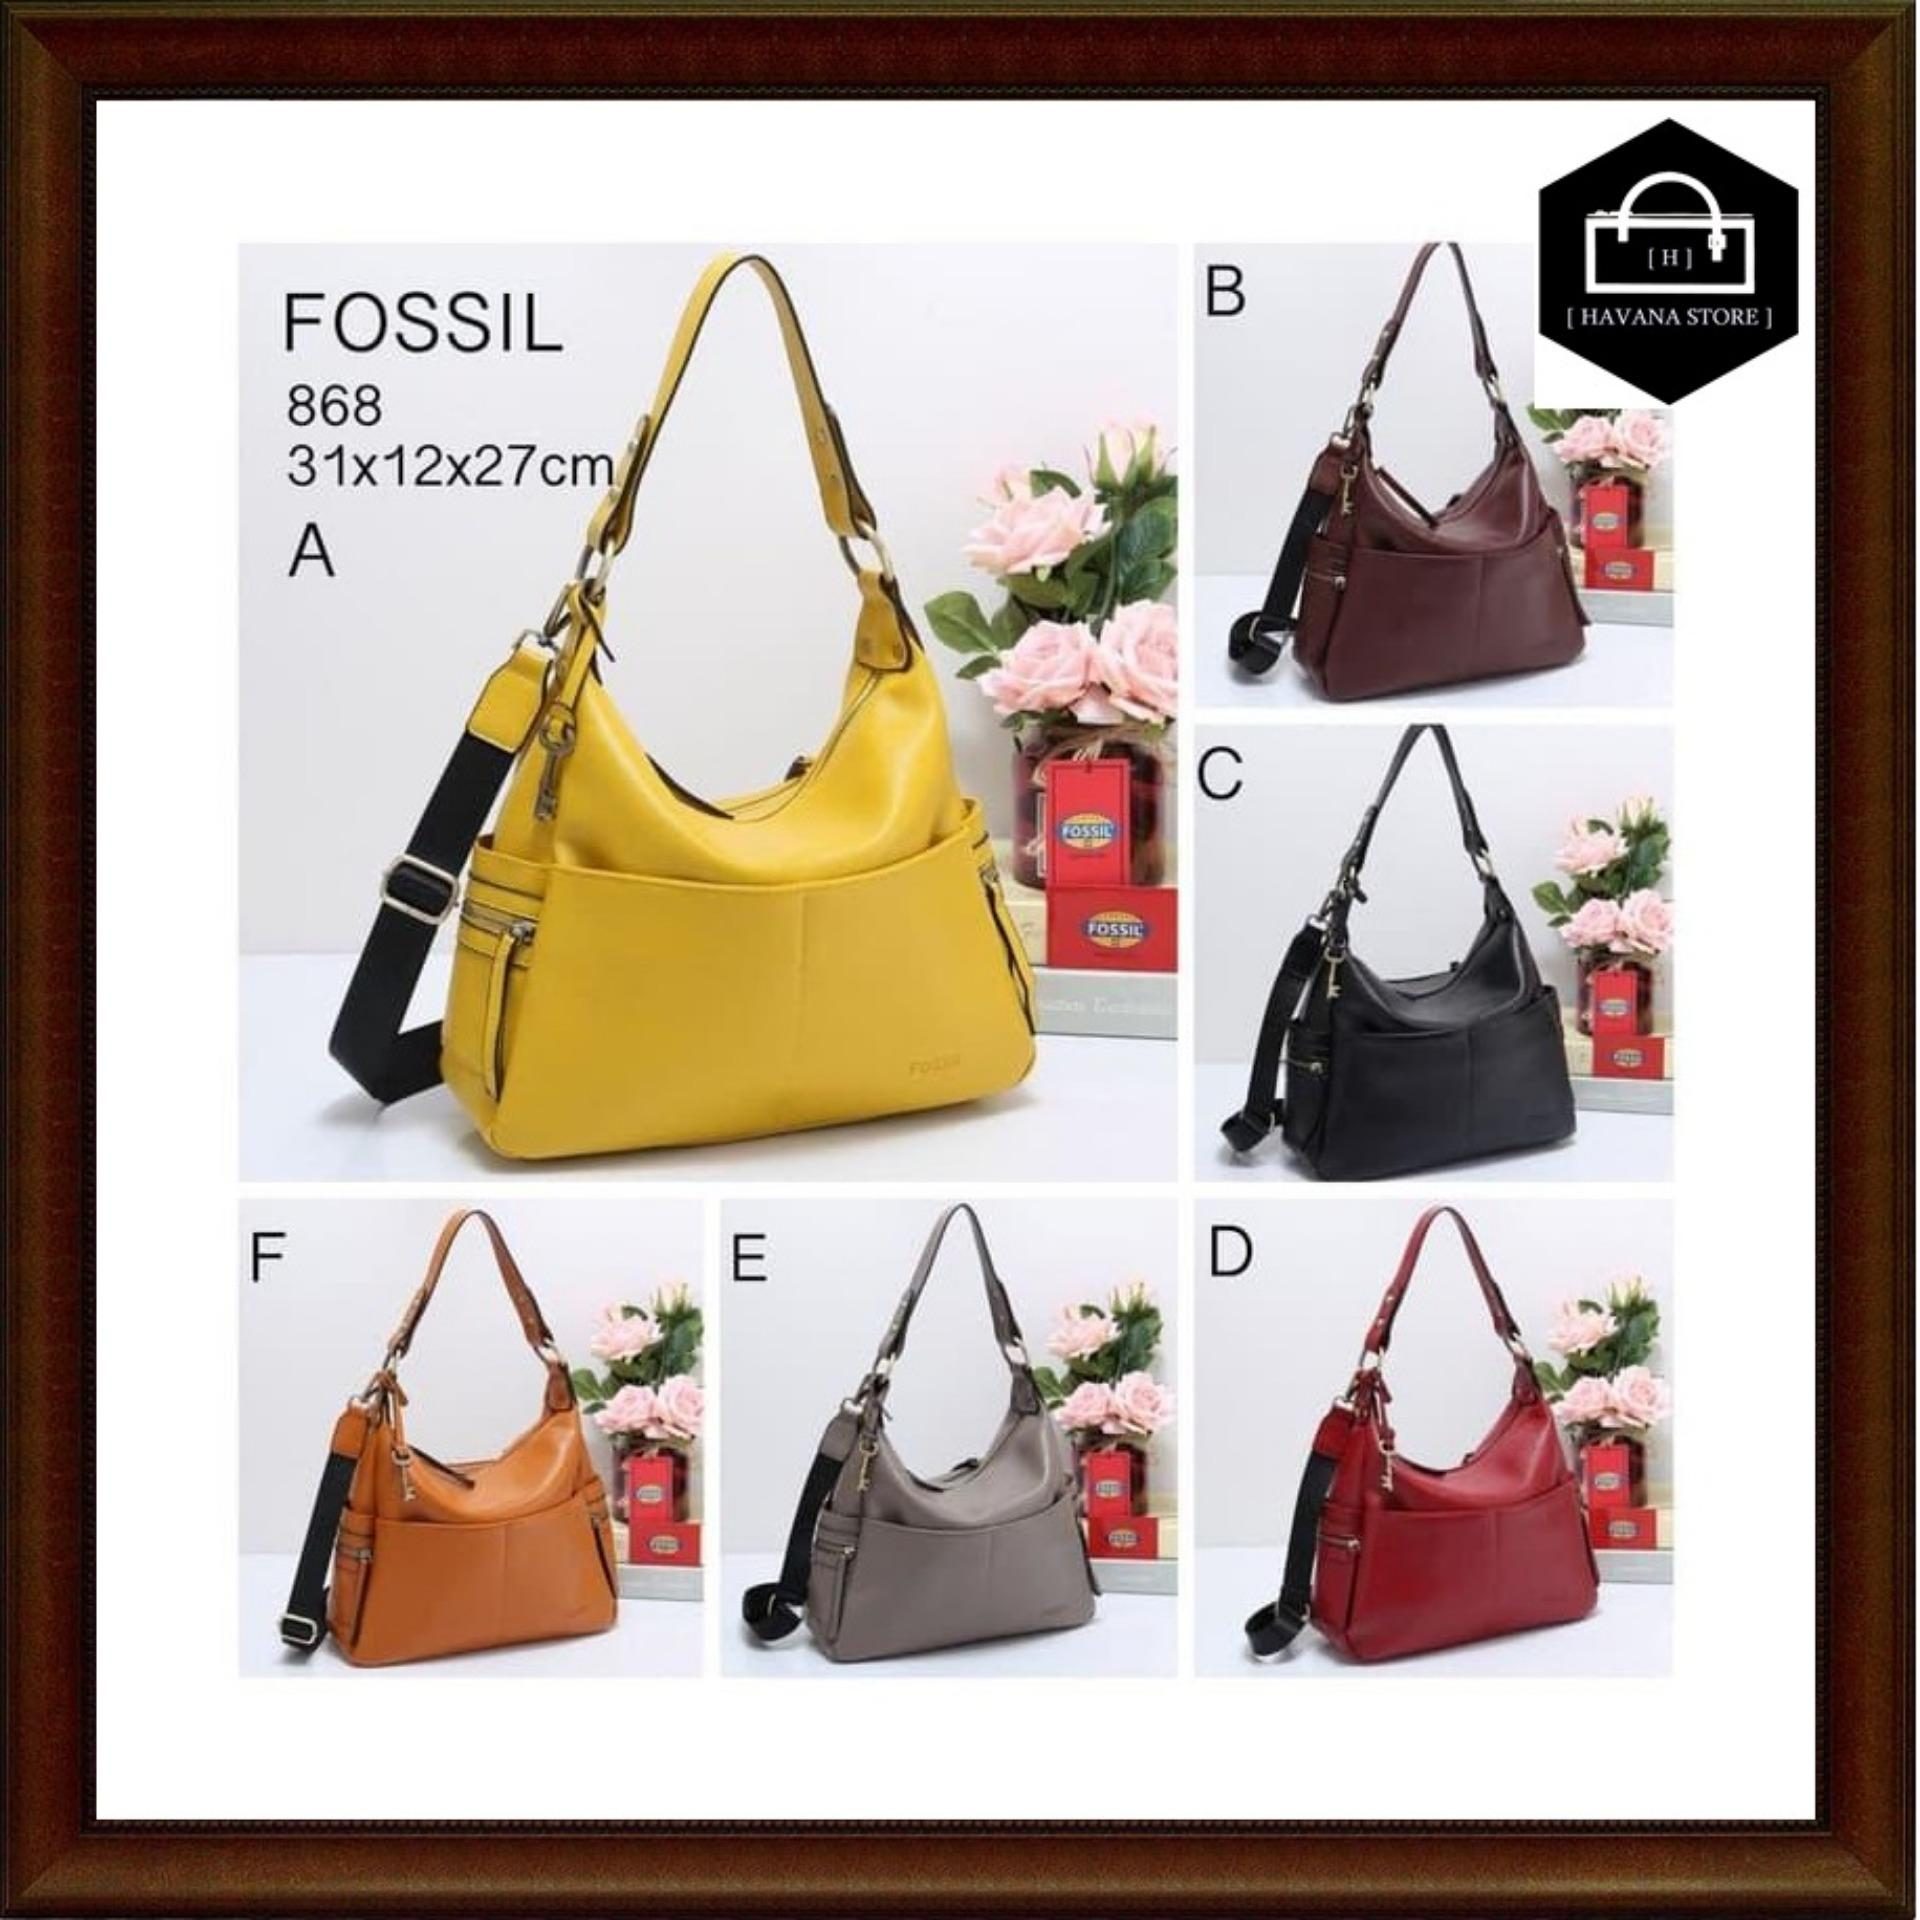 Buy Sell Cheapest Tas Gucci Hobo Best Quality Product Deals Fossil Emerson Satchel Large Floral Wanita Multicolor Pocket Togo Leather Semprem 868 A773 Bag Branded Mirror